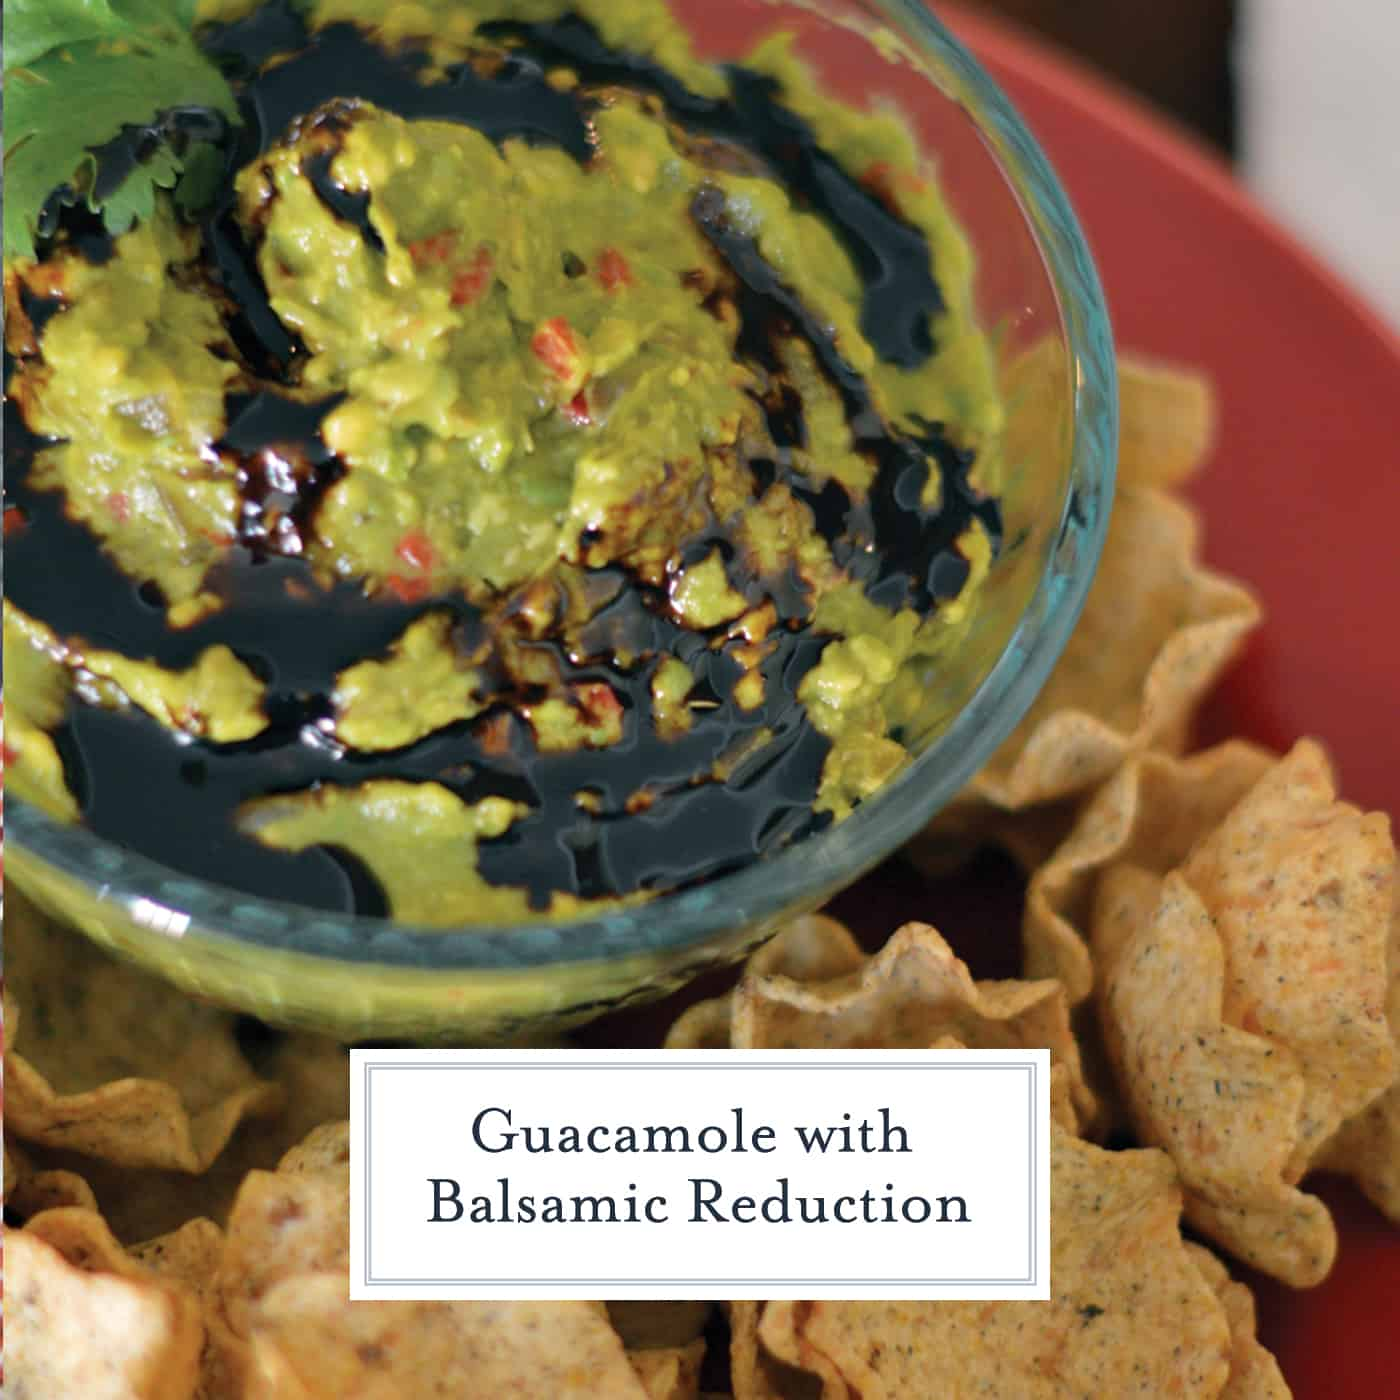 Guacamole with balsamic reduction is a great, new twist on an old favorite. Perfect for every party or just an afternoon snack. #guacamole #balsamicreduction #chipdip www.savoryexperiments.com